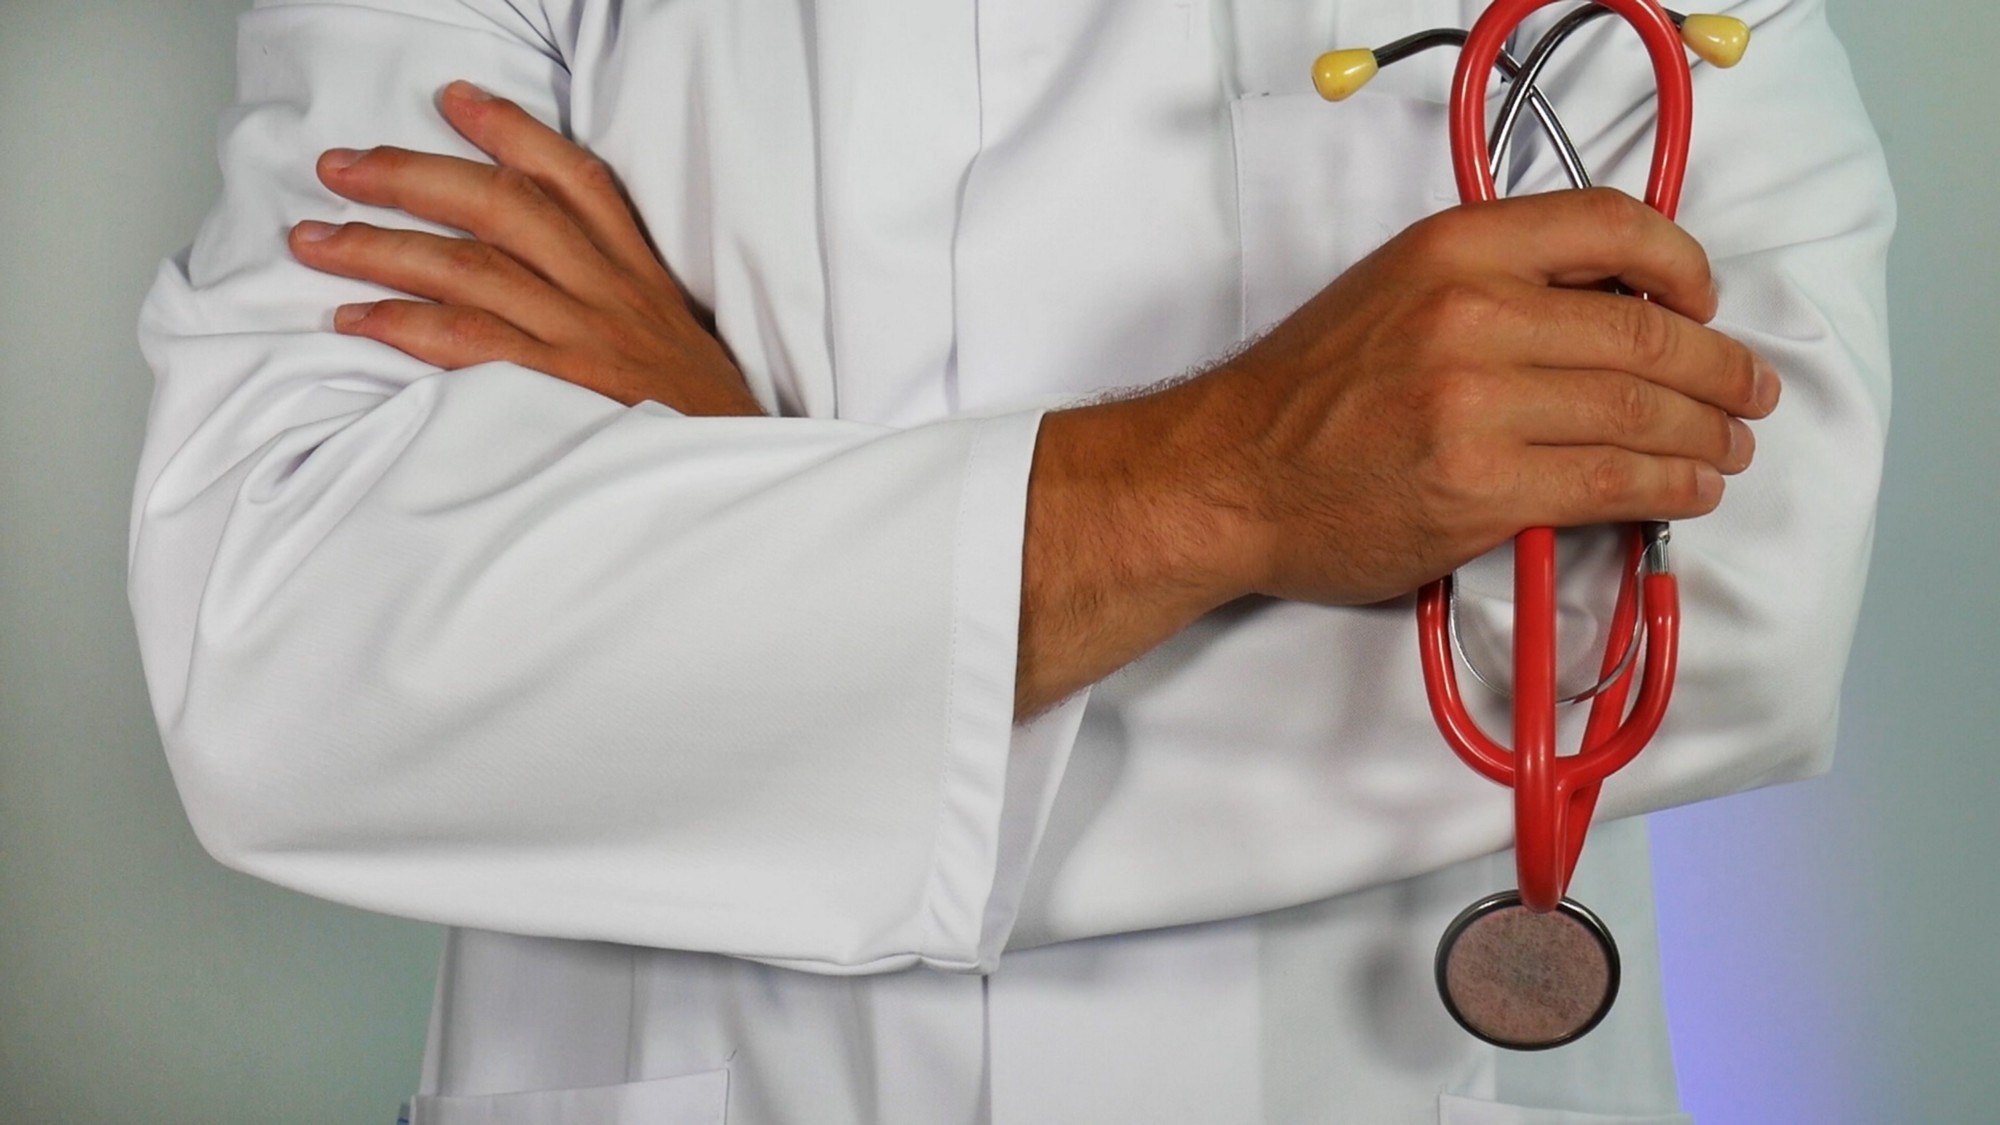 Doctor with red stethoscope